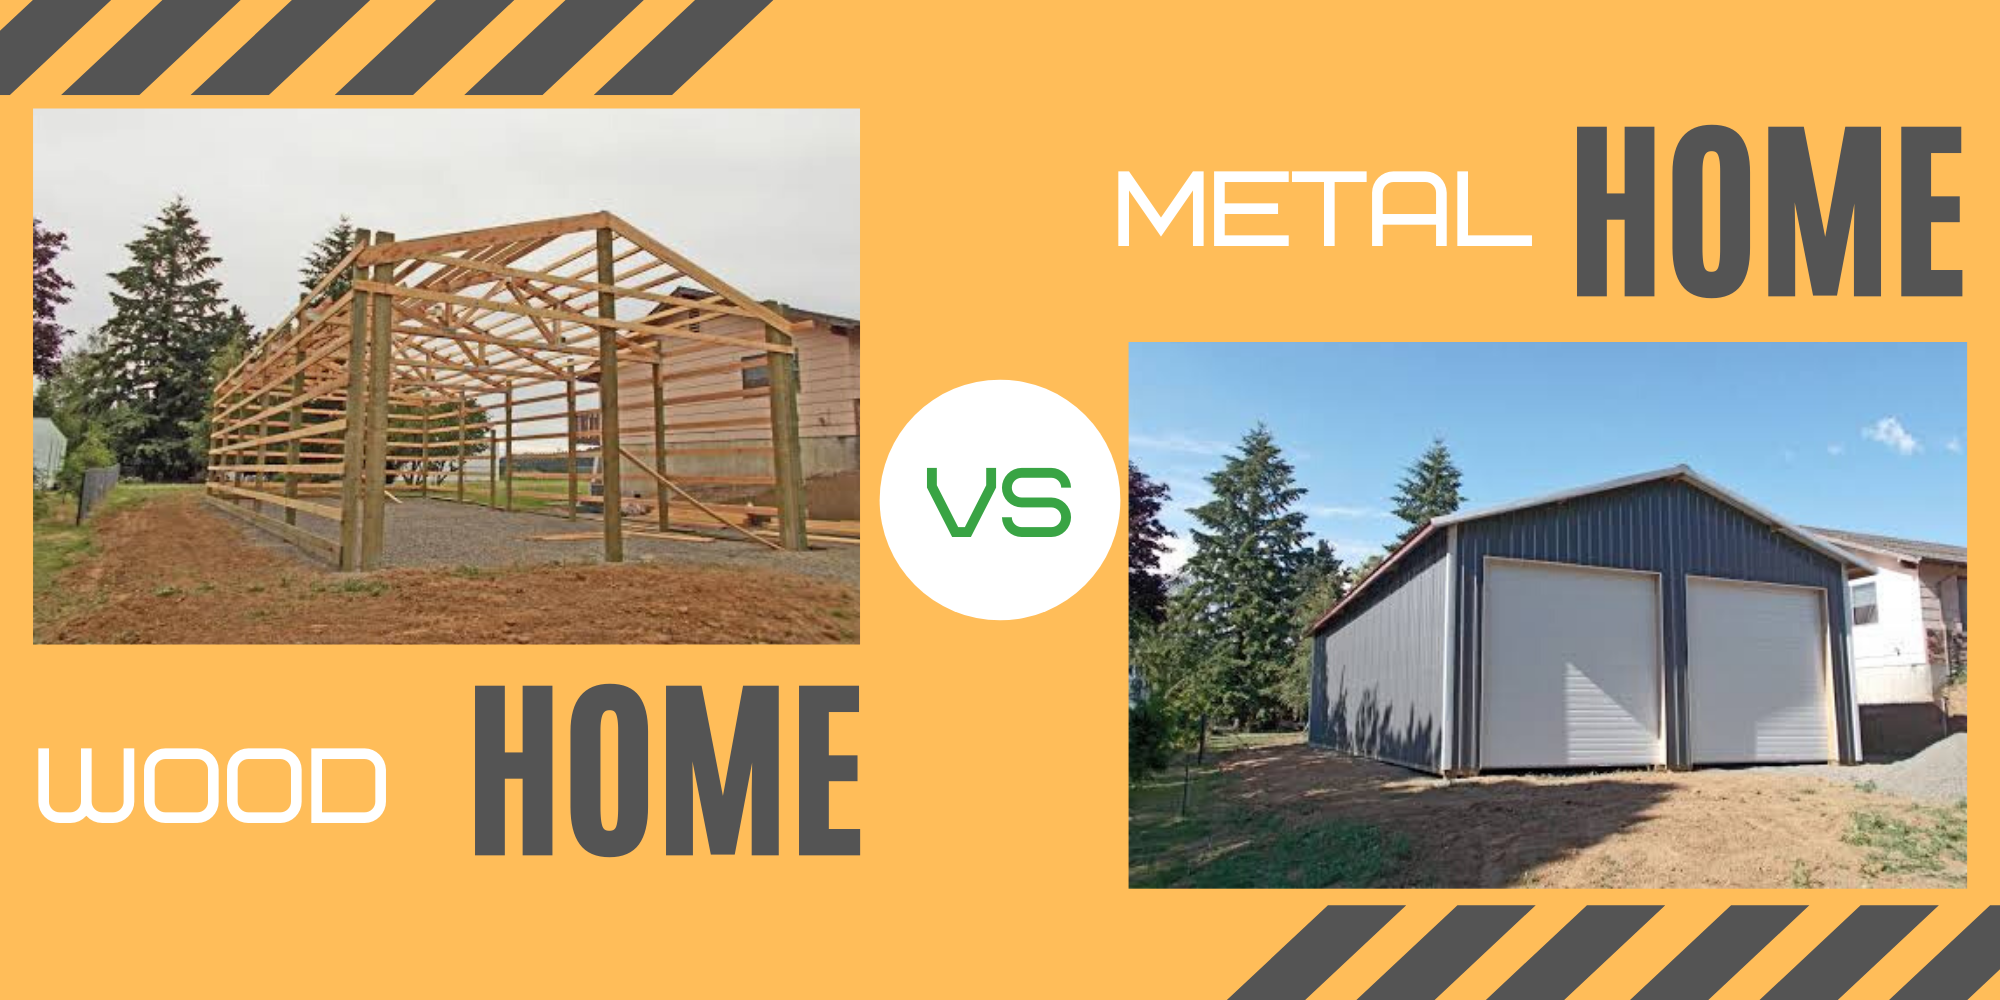 Metal Home vs Wood Home